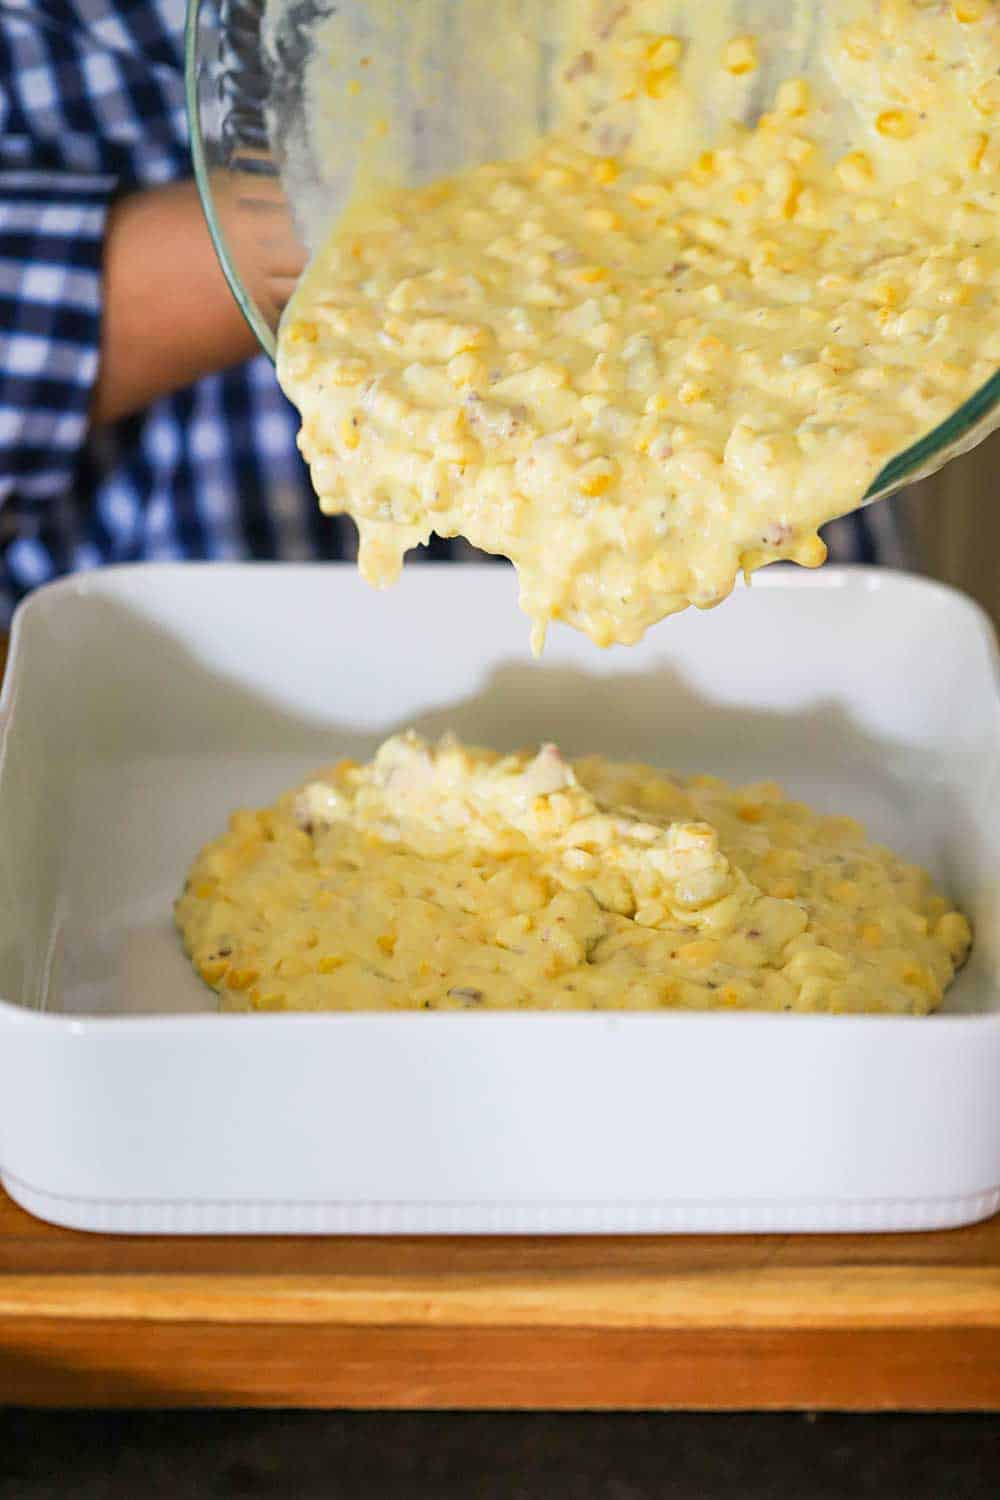 A person pouring a corn casserole uncooked mixture into a square baking dish.